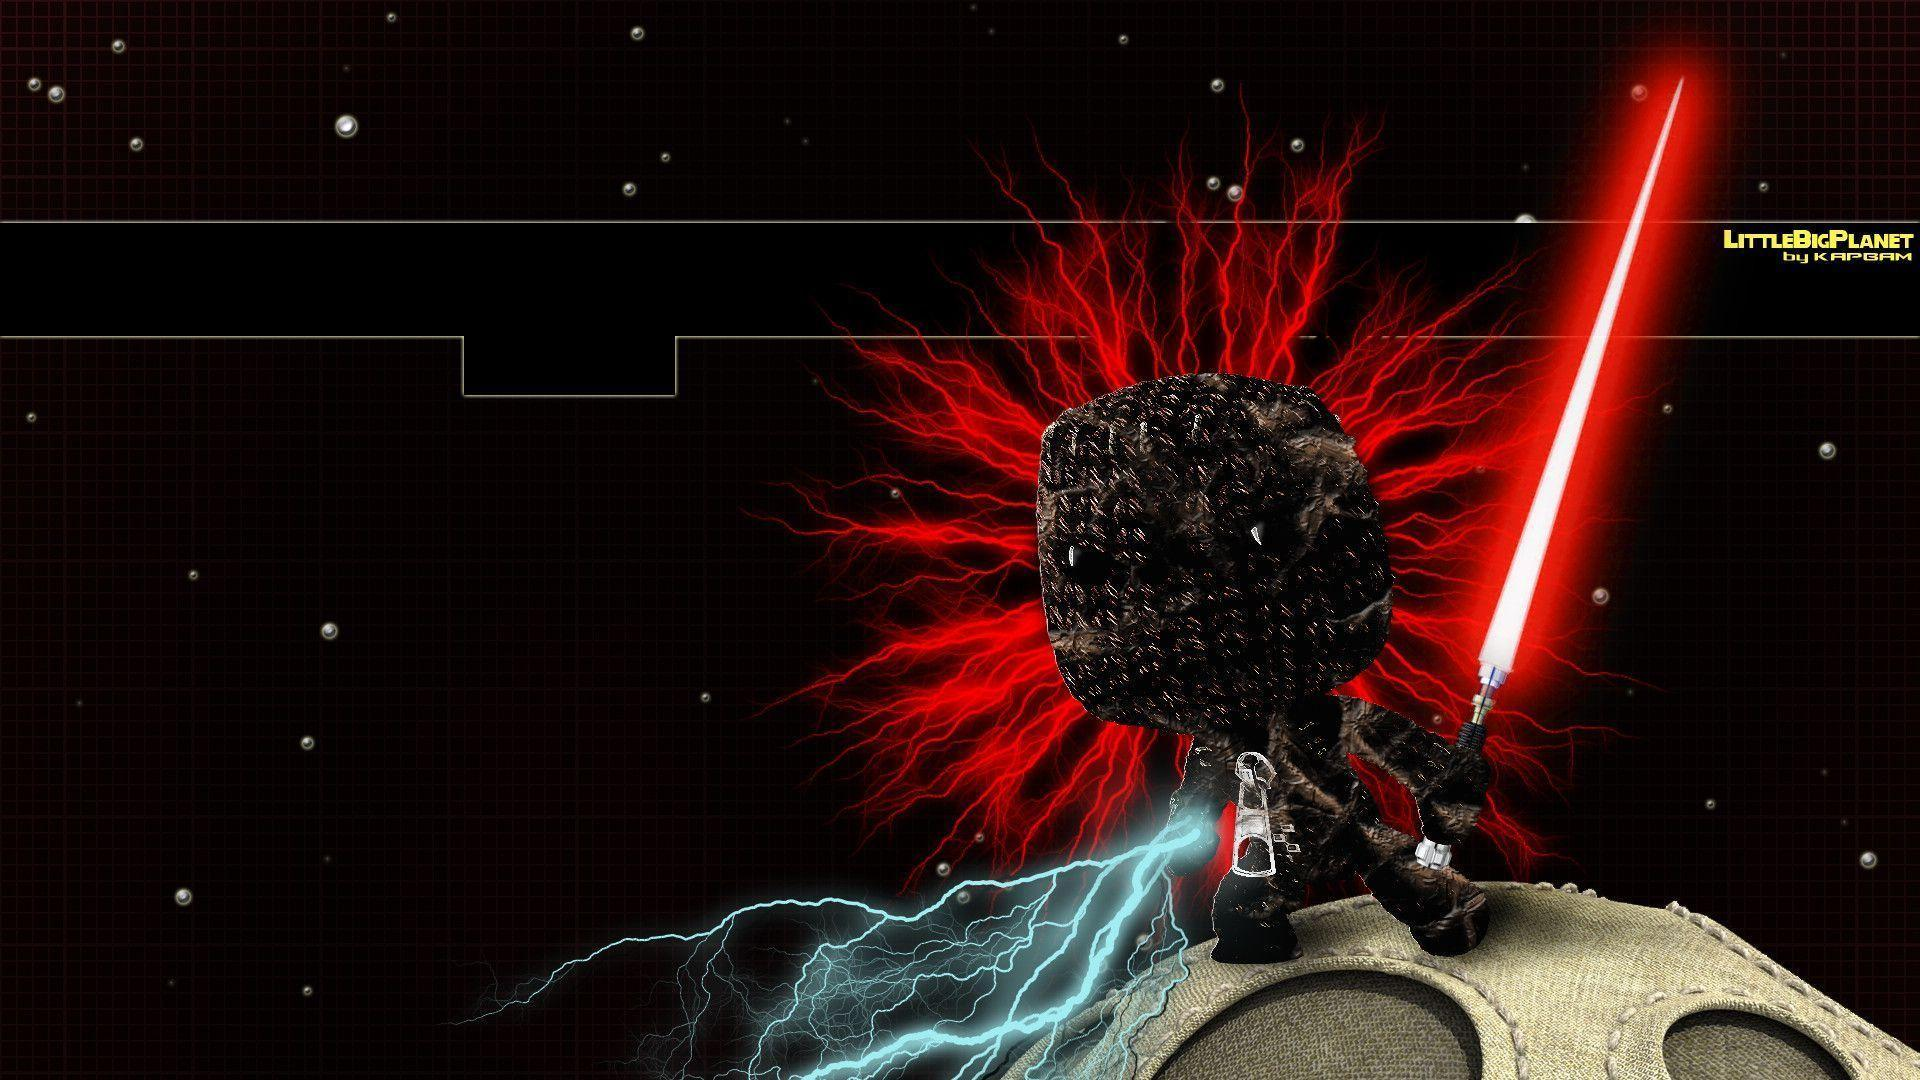 Wallpaper download ps3 - Ps3 Background Gameshd